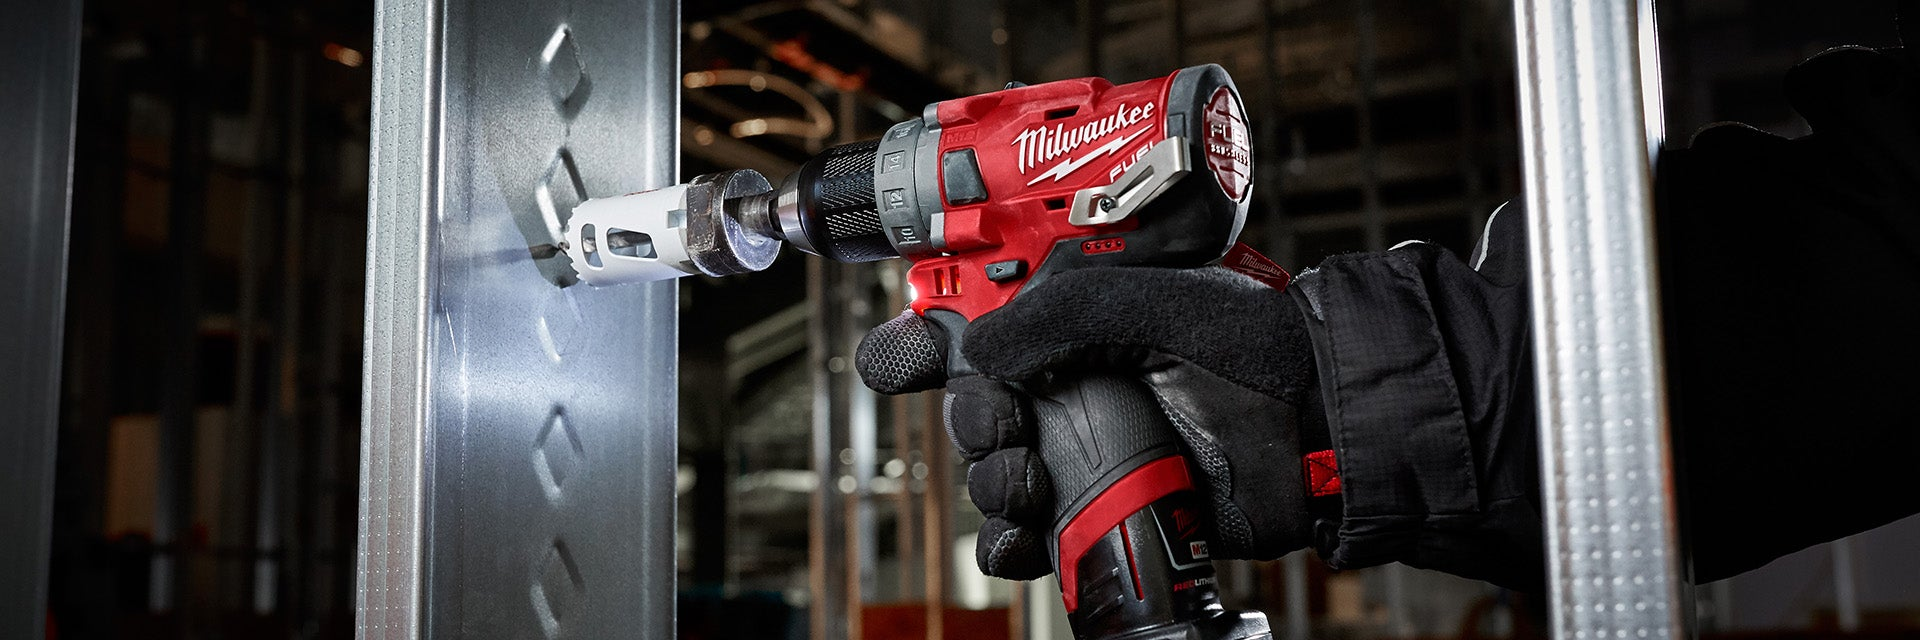 Milwaukee renowned battery tools